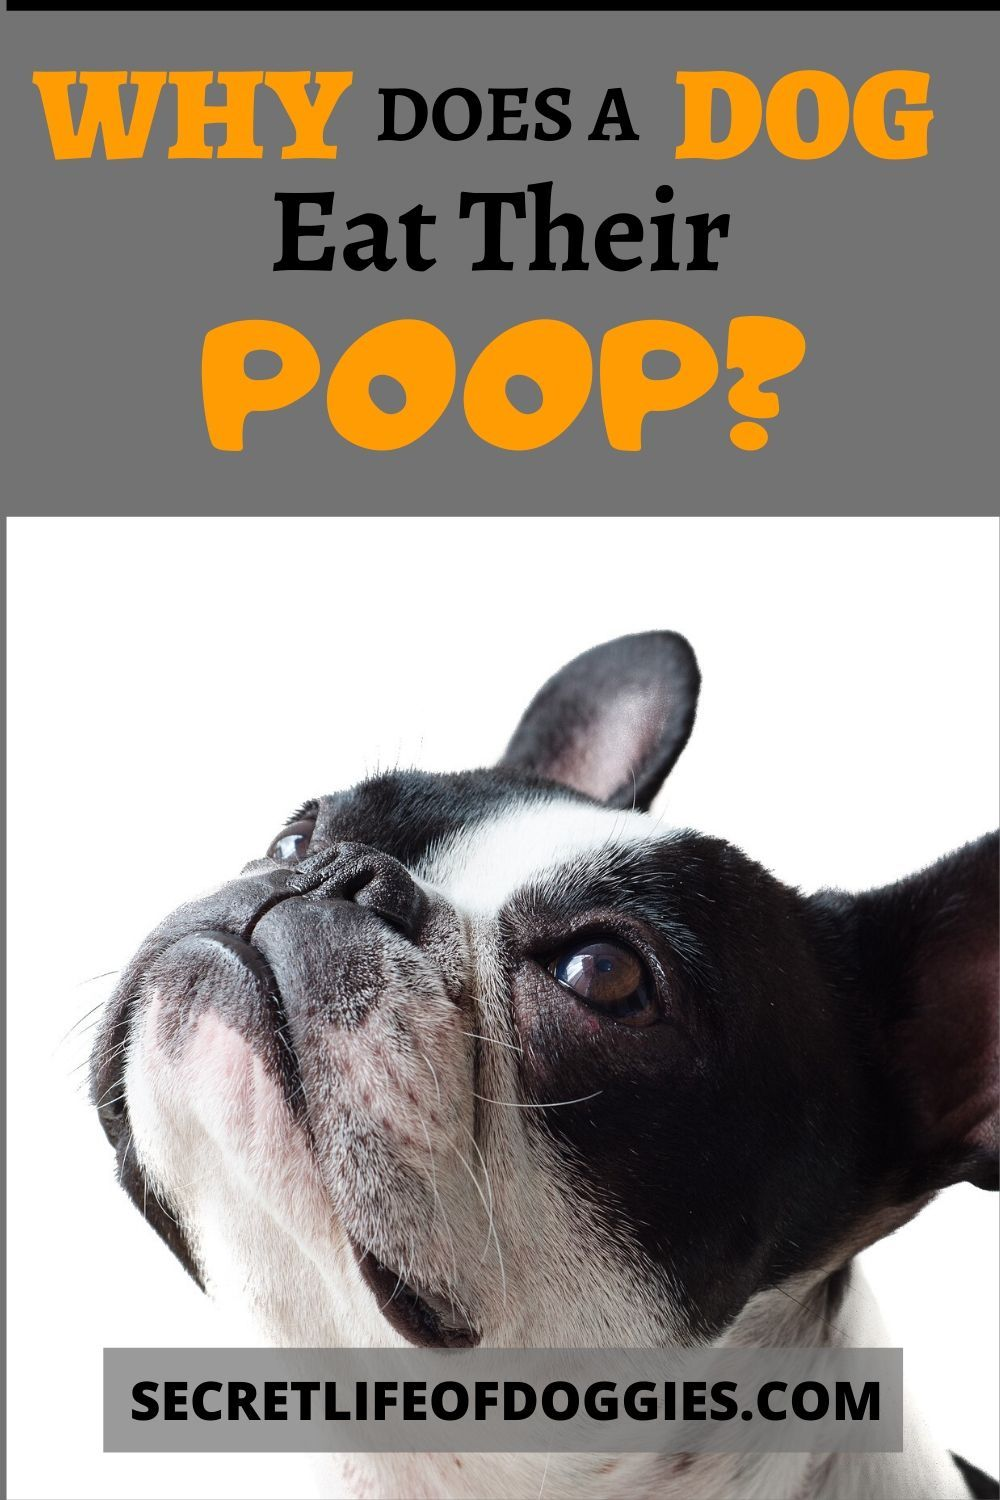 Dog tips image by pet advisor tips for dog own in 2020